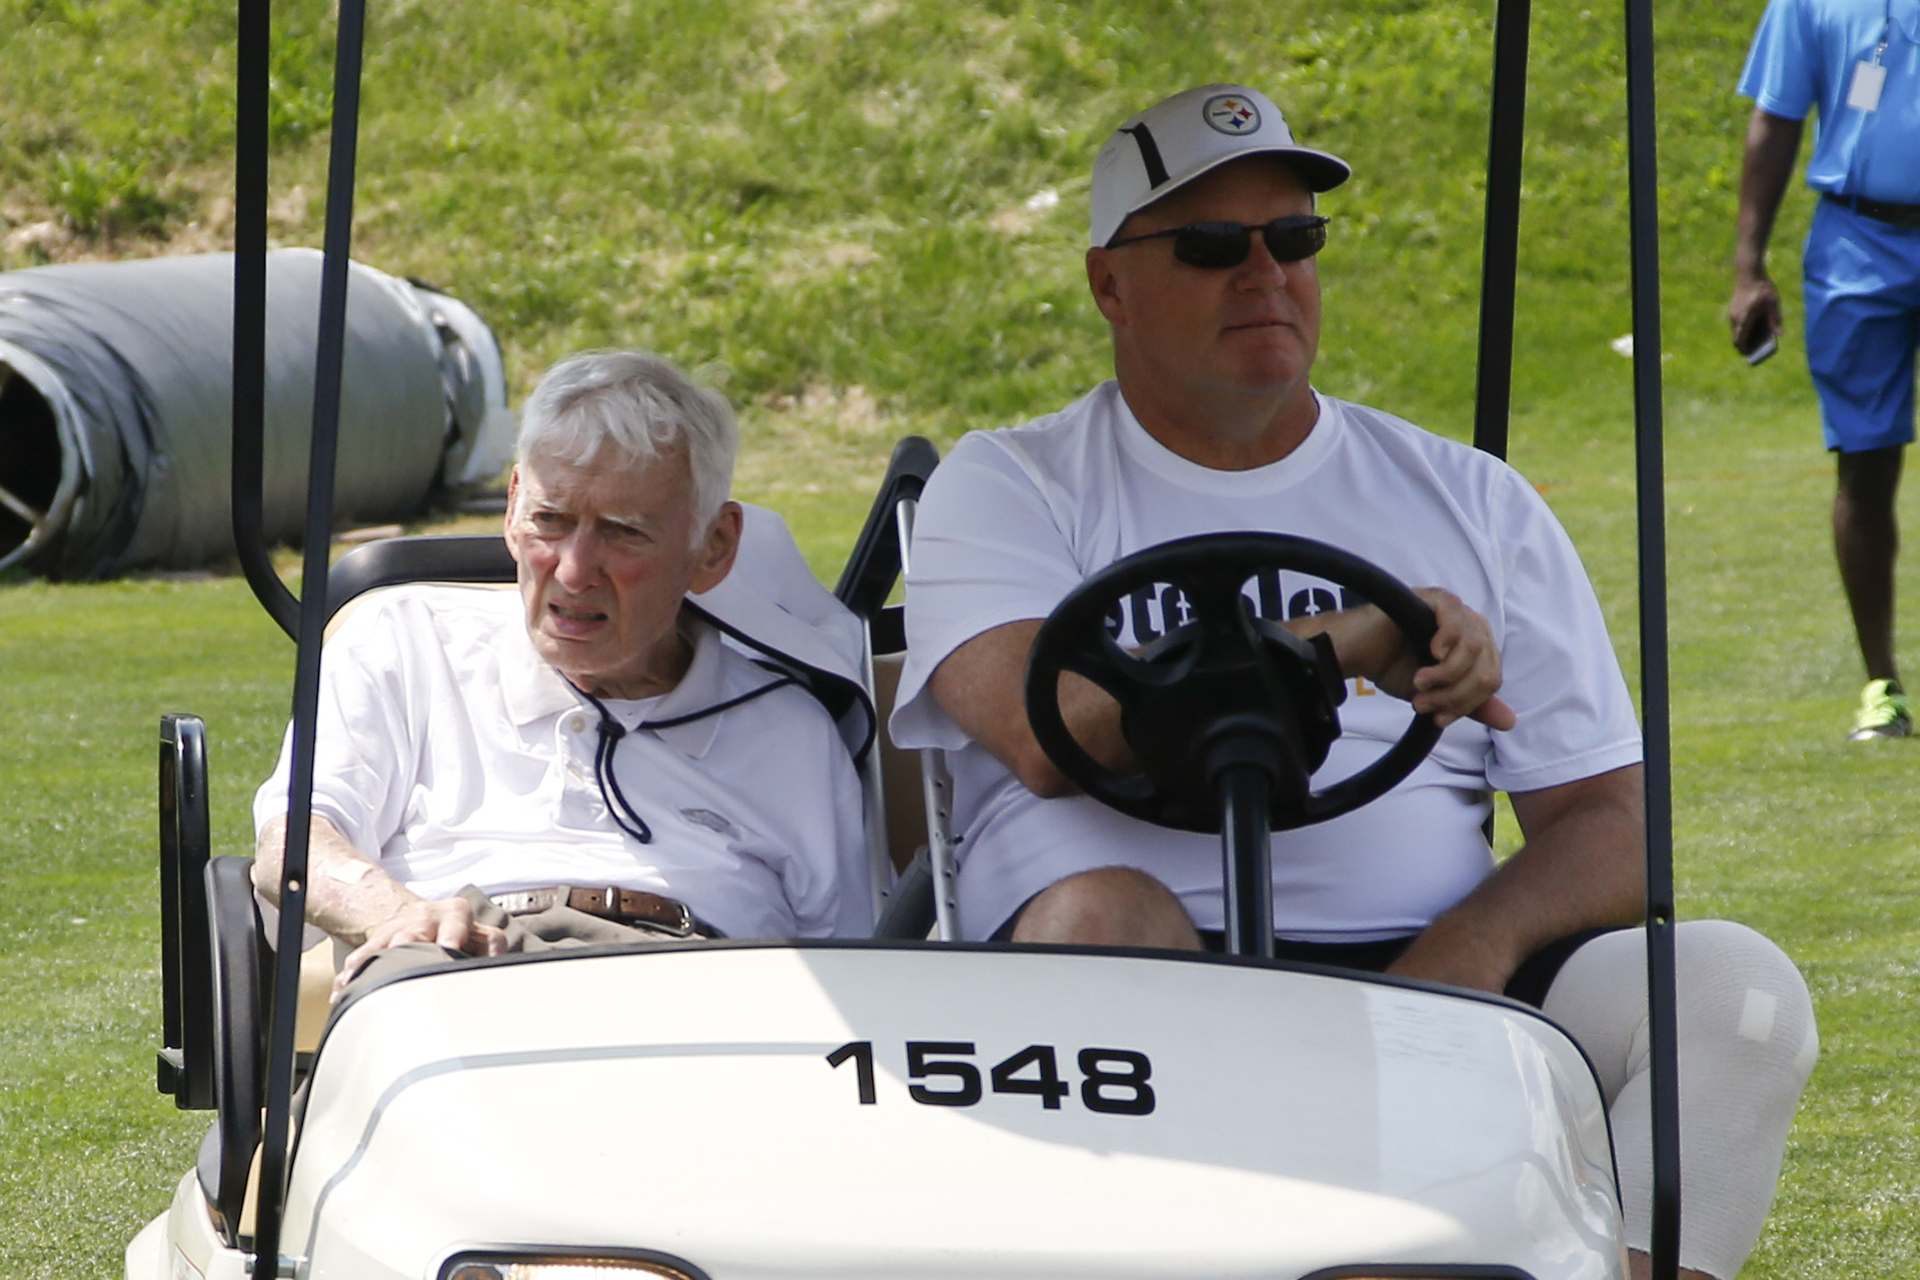 Pittsburgh Steelers chairman Dan Rooney, left, arrives with team general manager cat the beginning of the Steelers first practice at NFL football training camp in Latrobe, Pa. on Sunday, July 26, 2015. (AP Photo/Keith Srakocic)